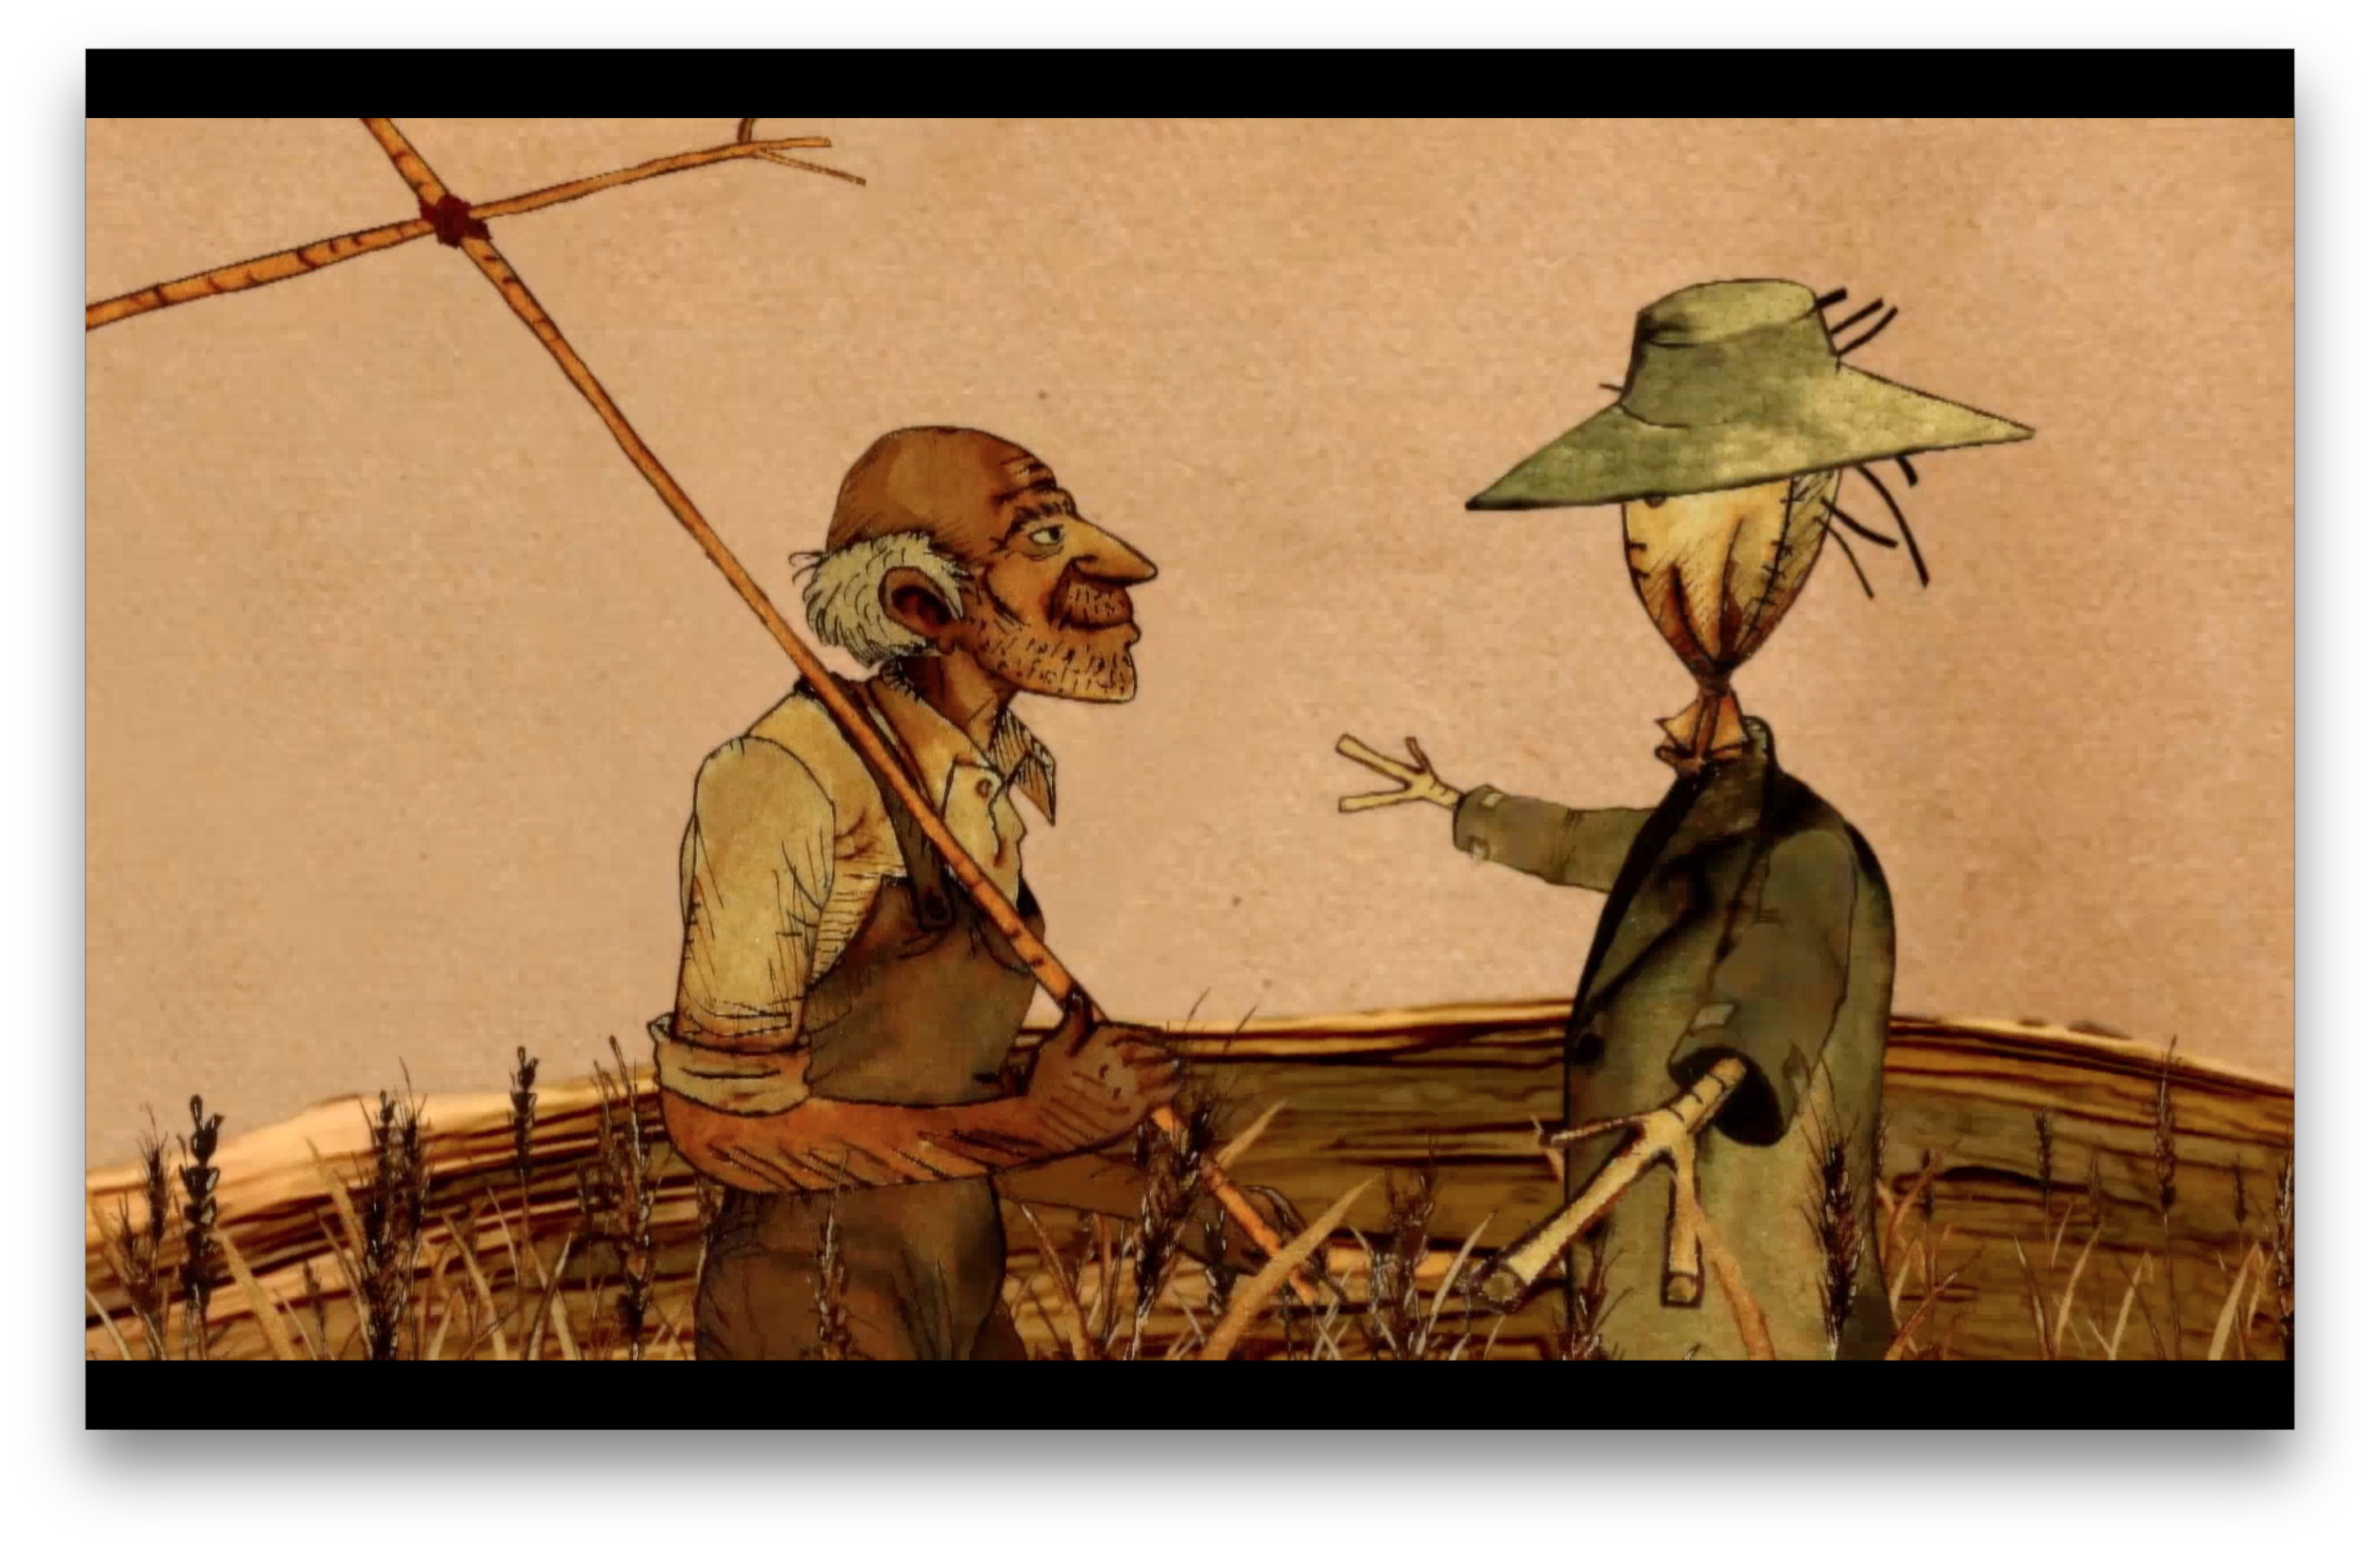 Blows with the Wind (Iran) - After a magical event a scarecrow comes to life. - 06:30Directed by Hazhir As'adi